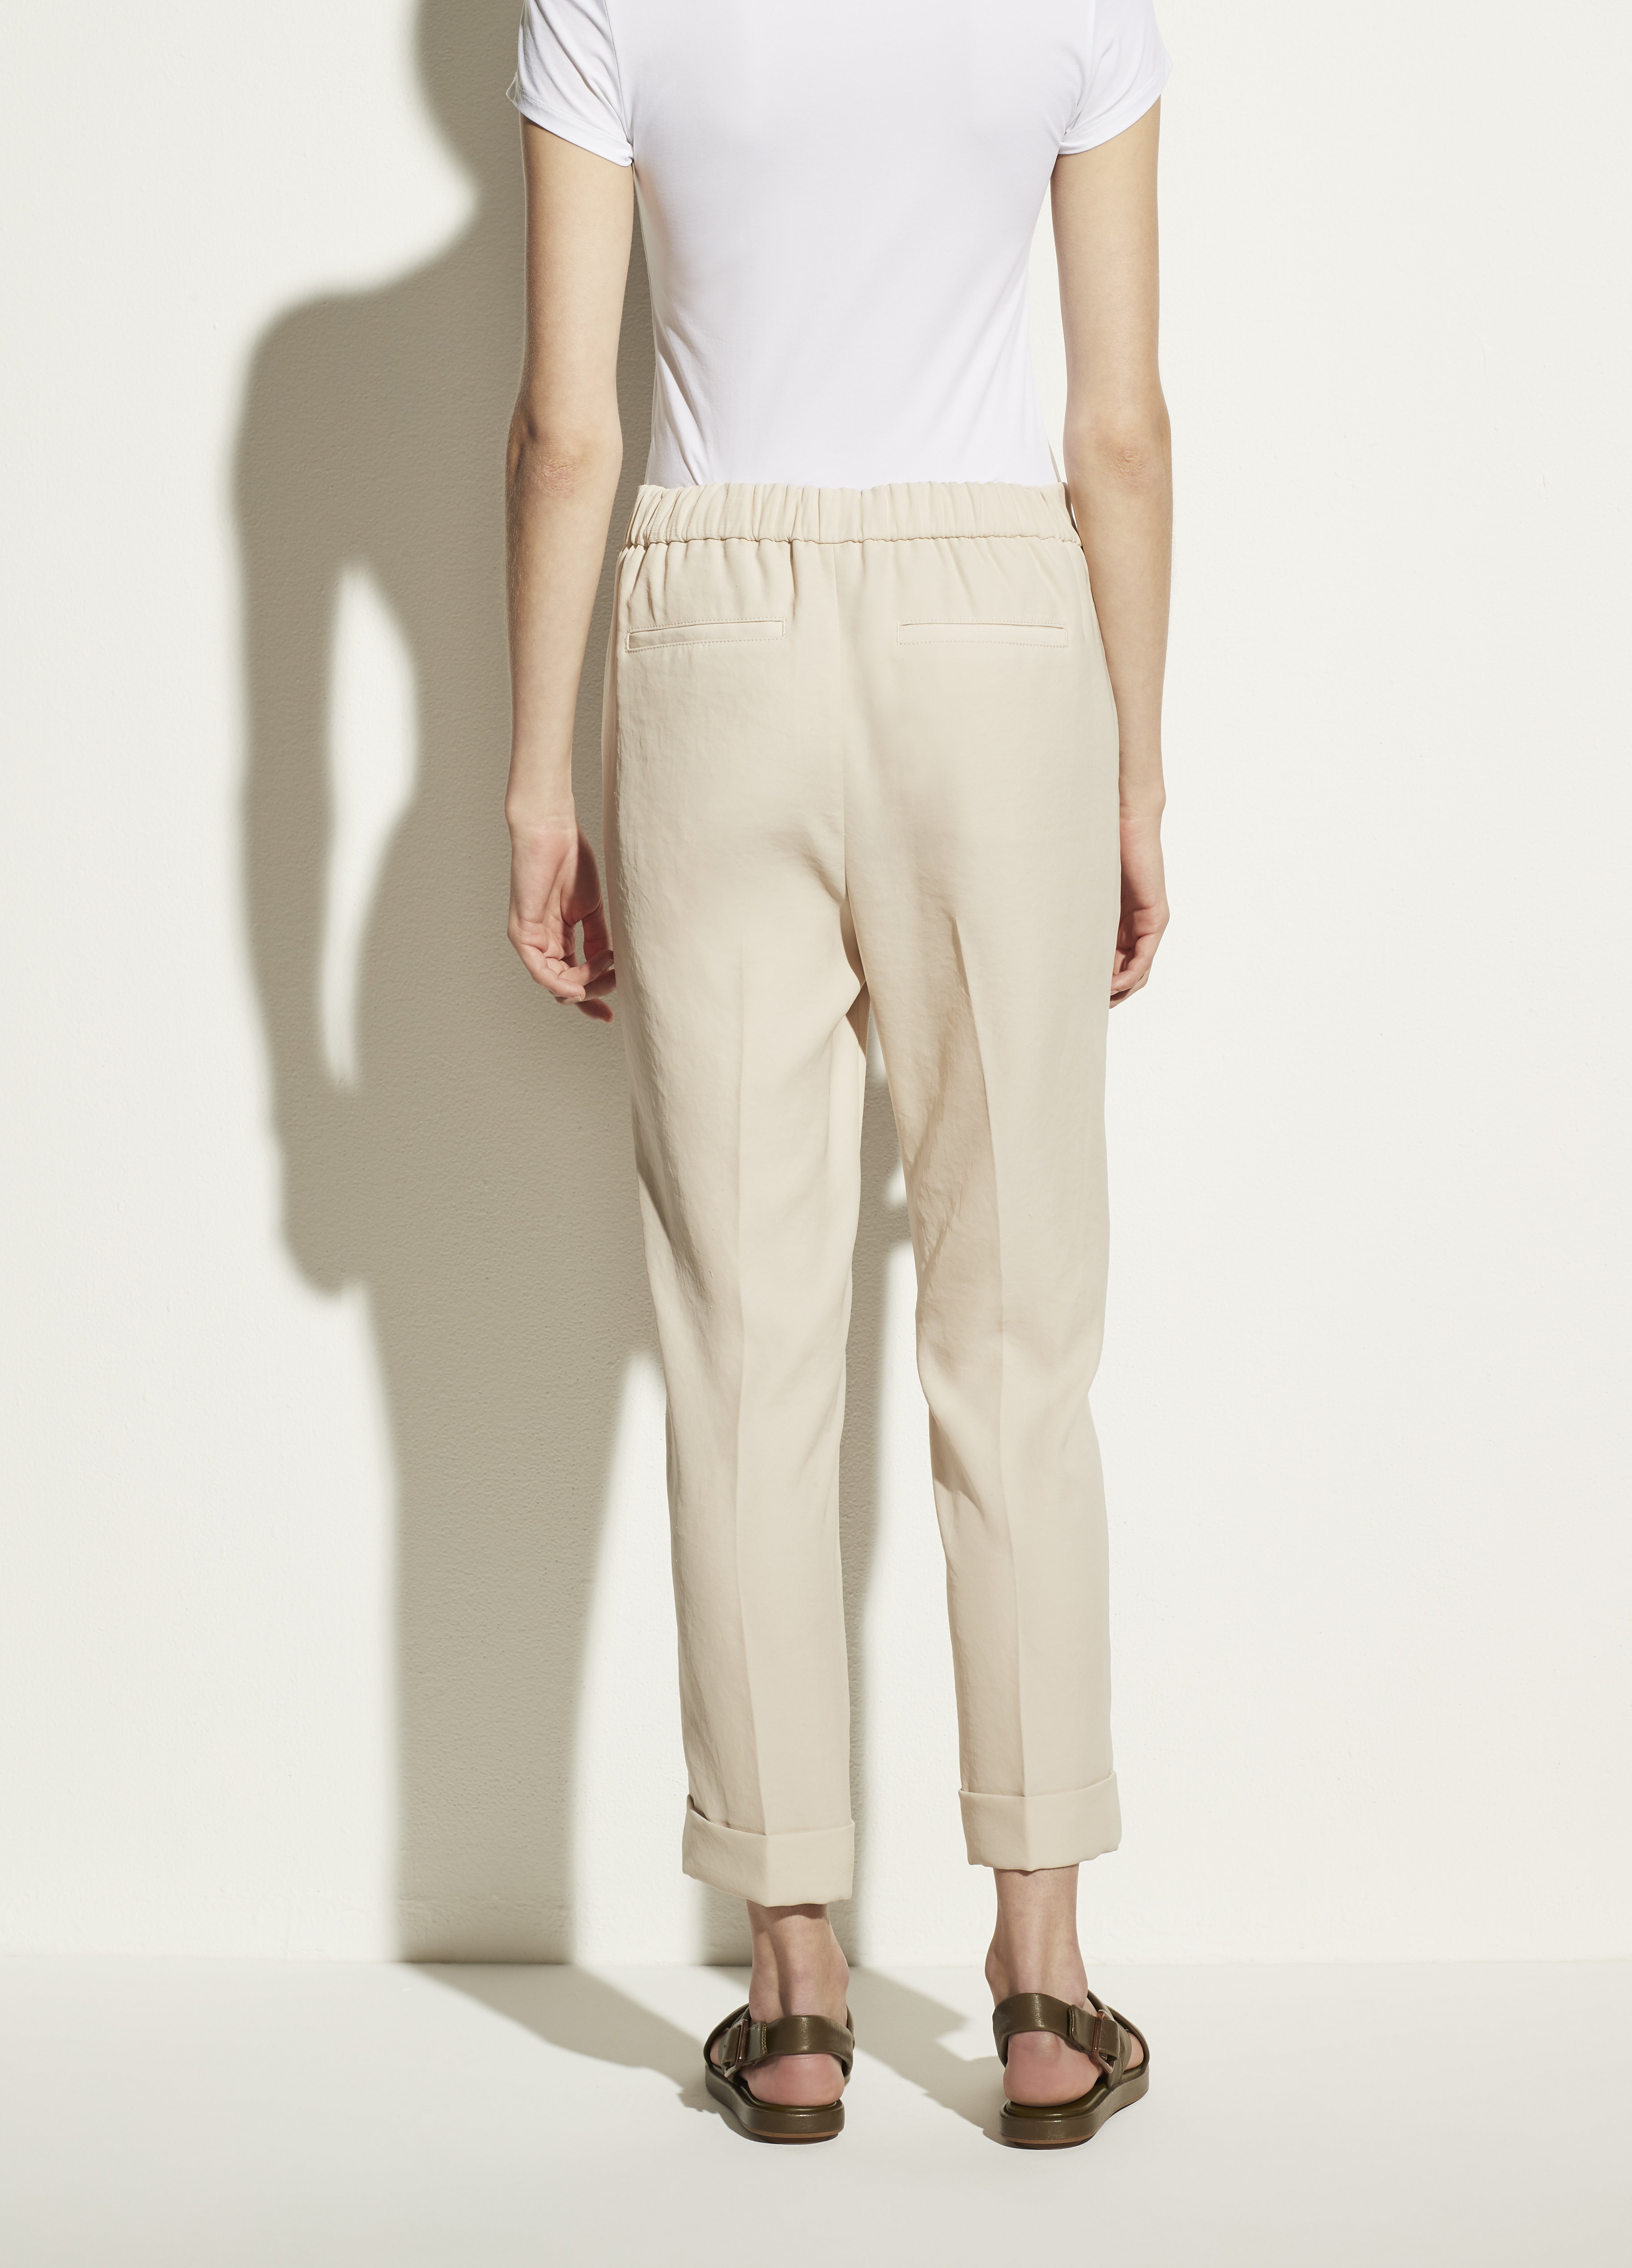 Cuffed Tapered Pull On Pant